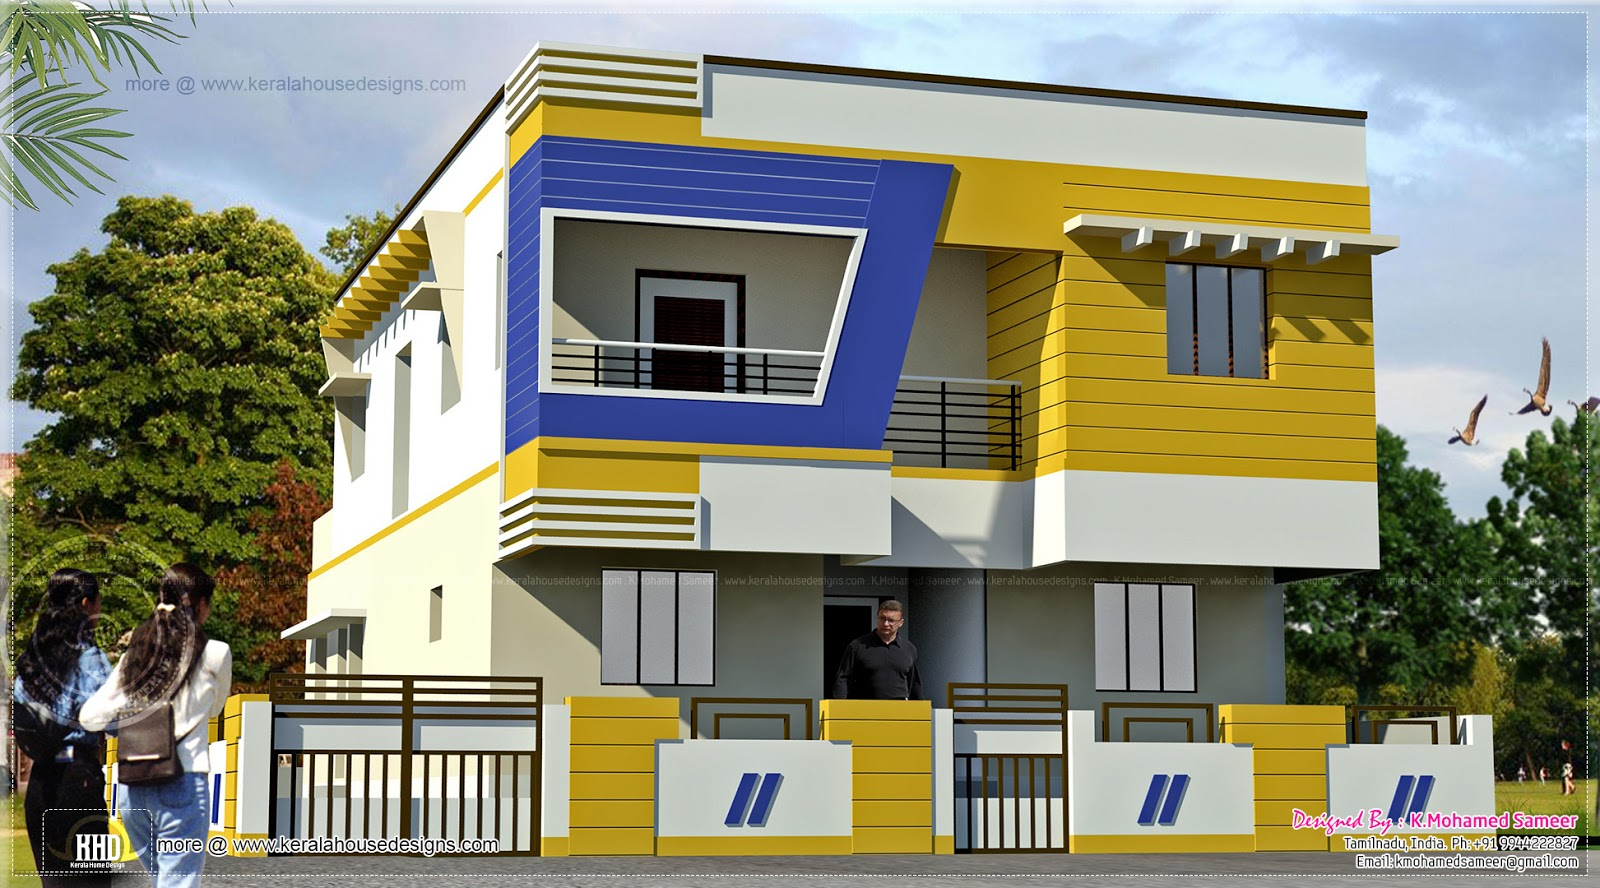 Modern tamilnadu style house design kerala home design for Tamilnadu house designs photos